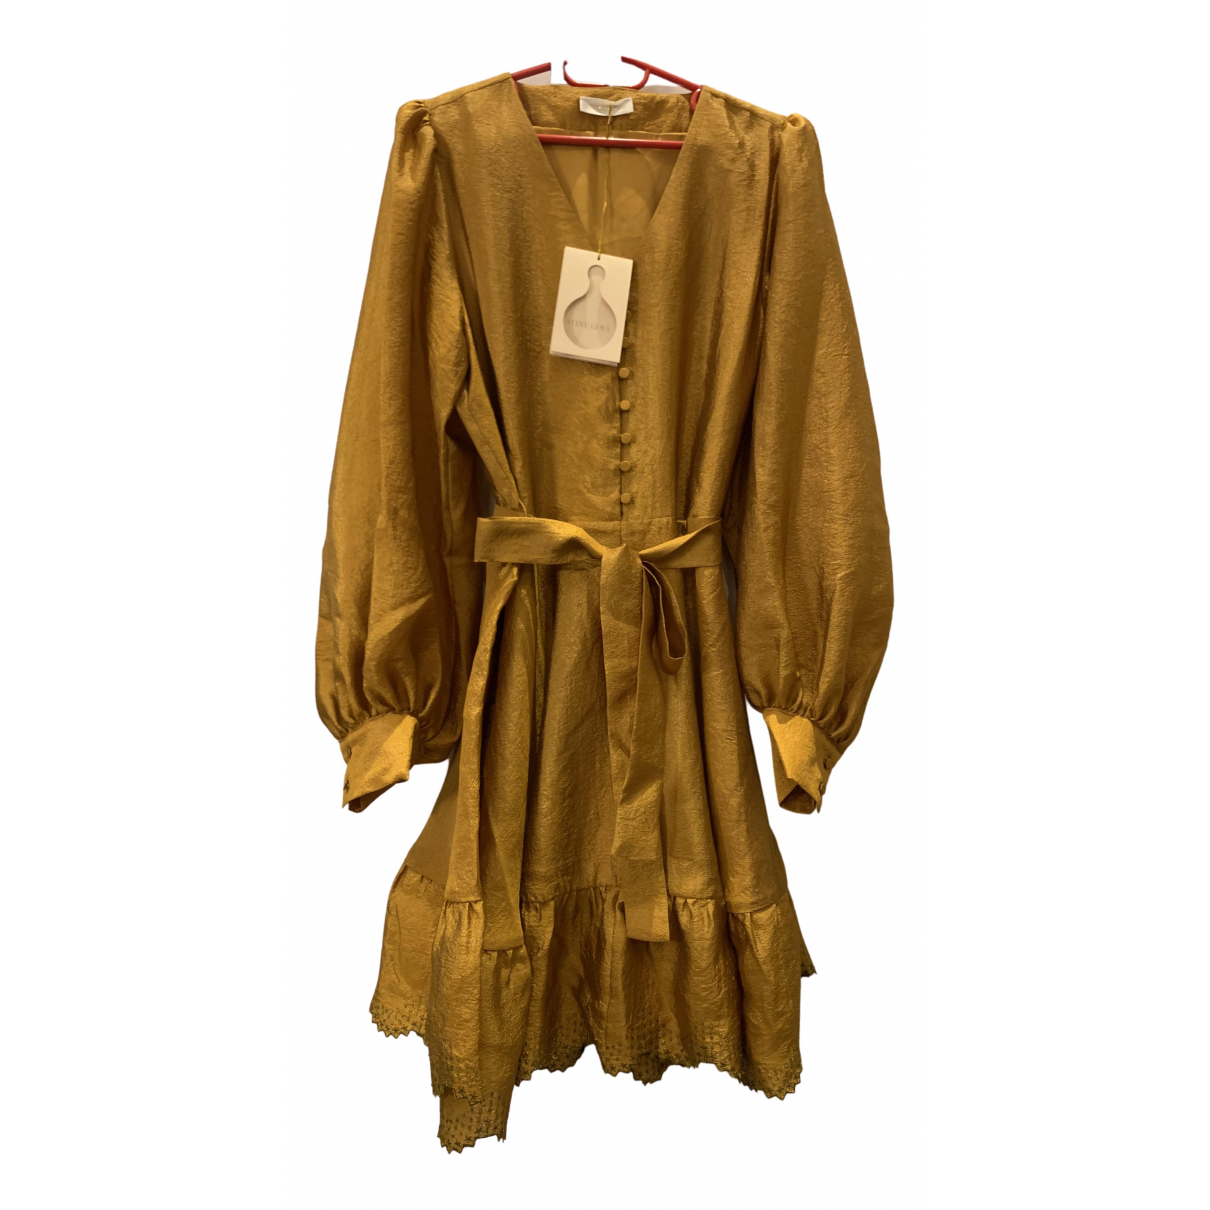 Stine Goya \N Gold dress for Women S International